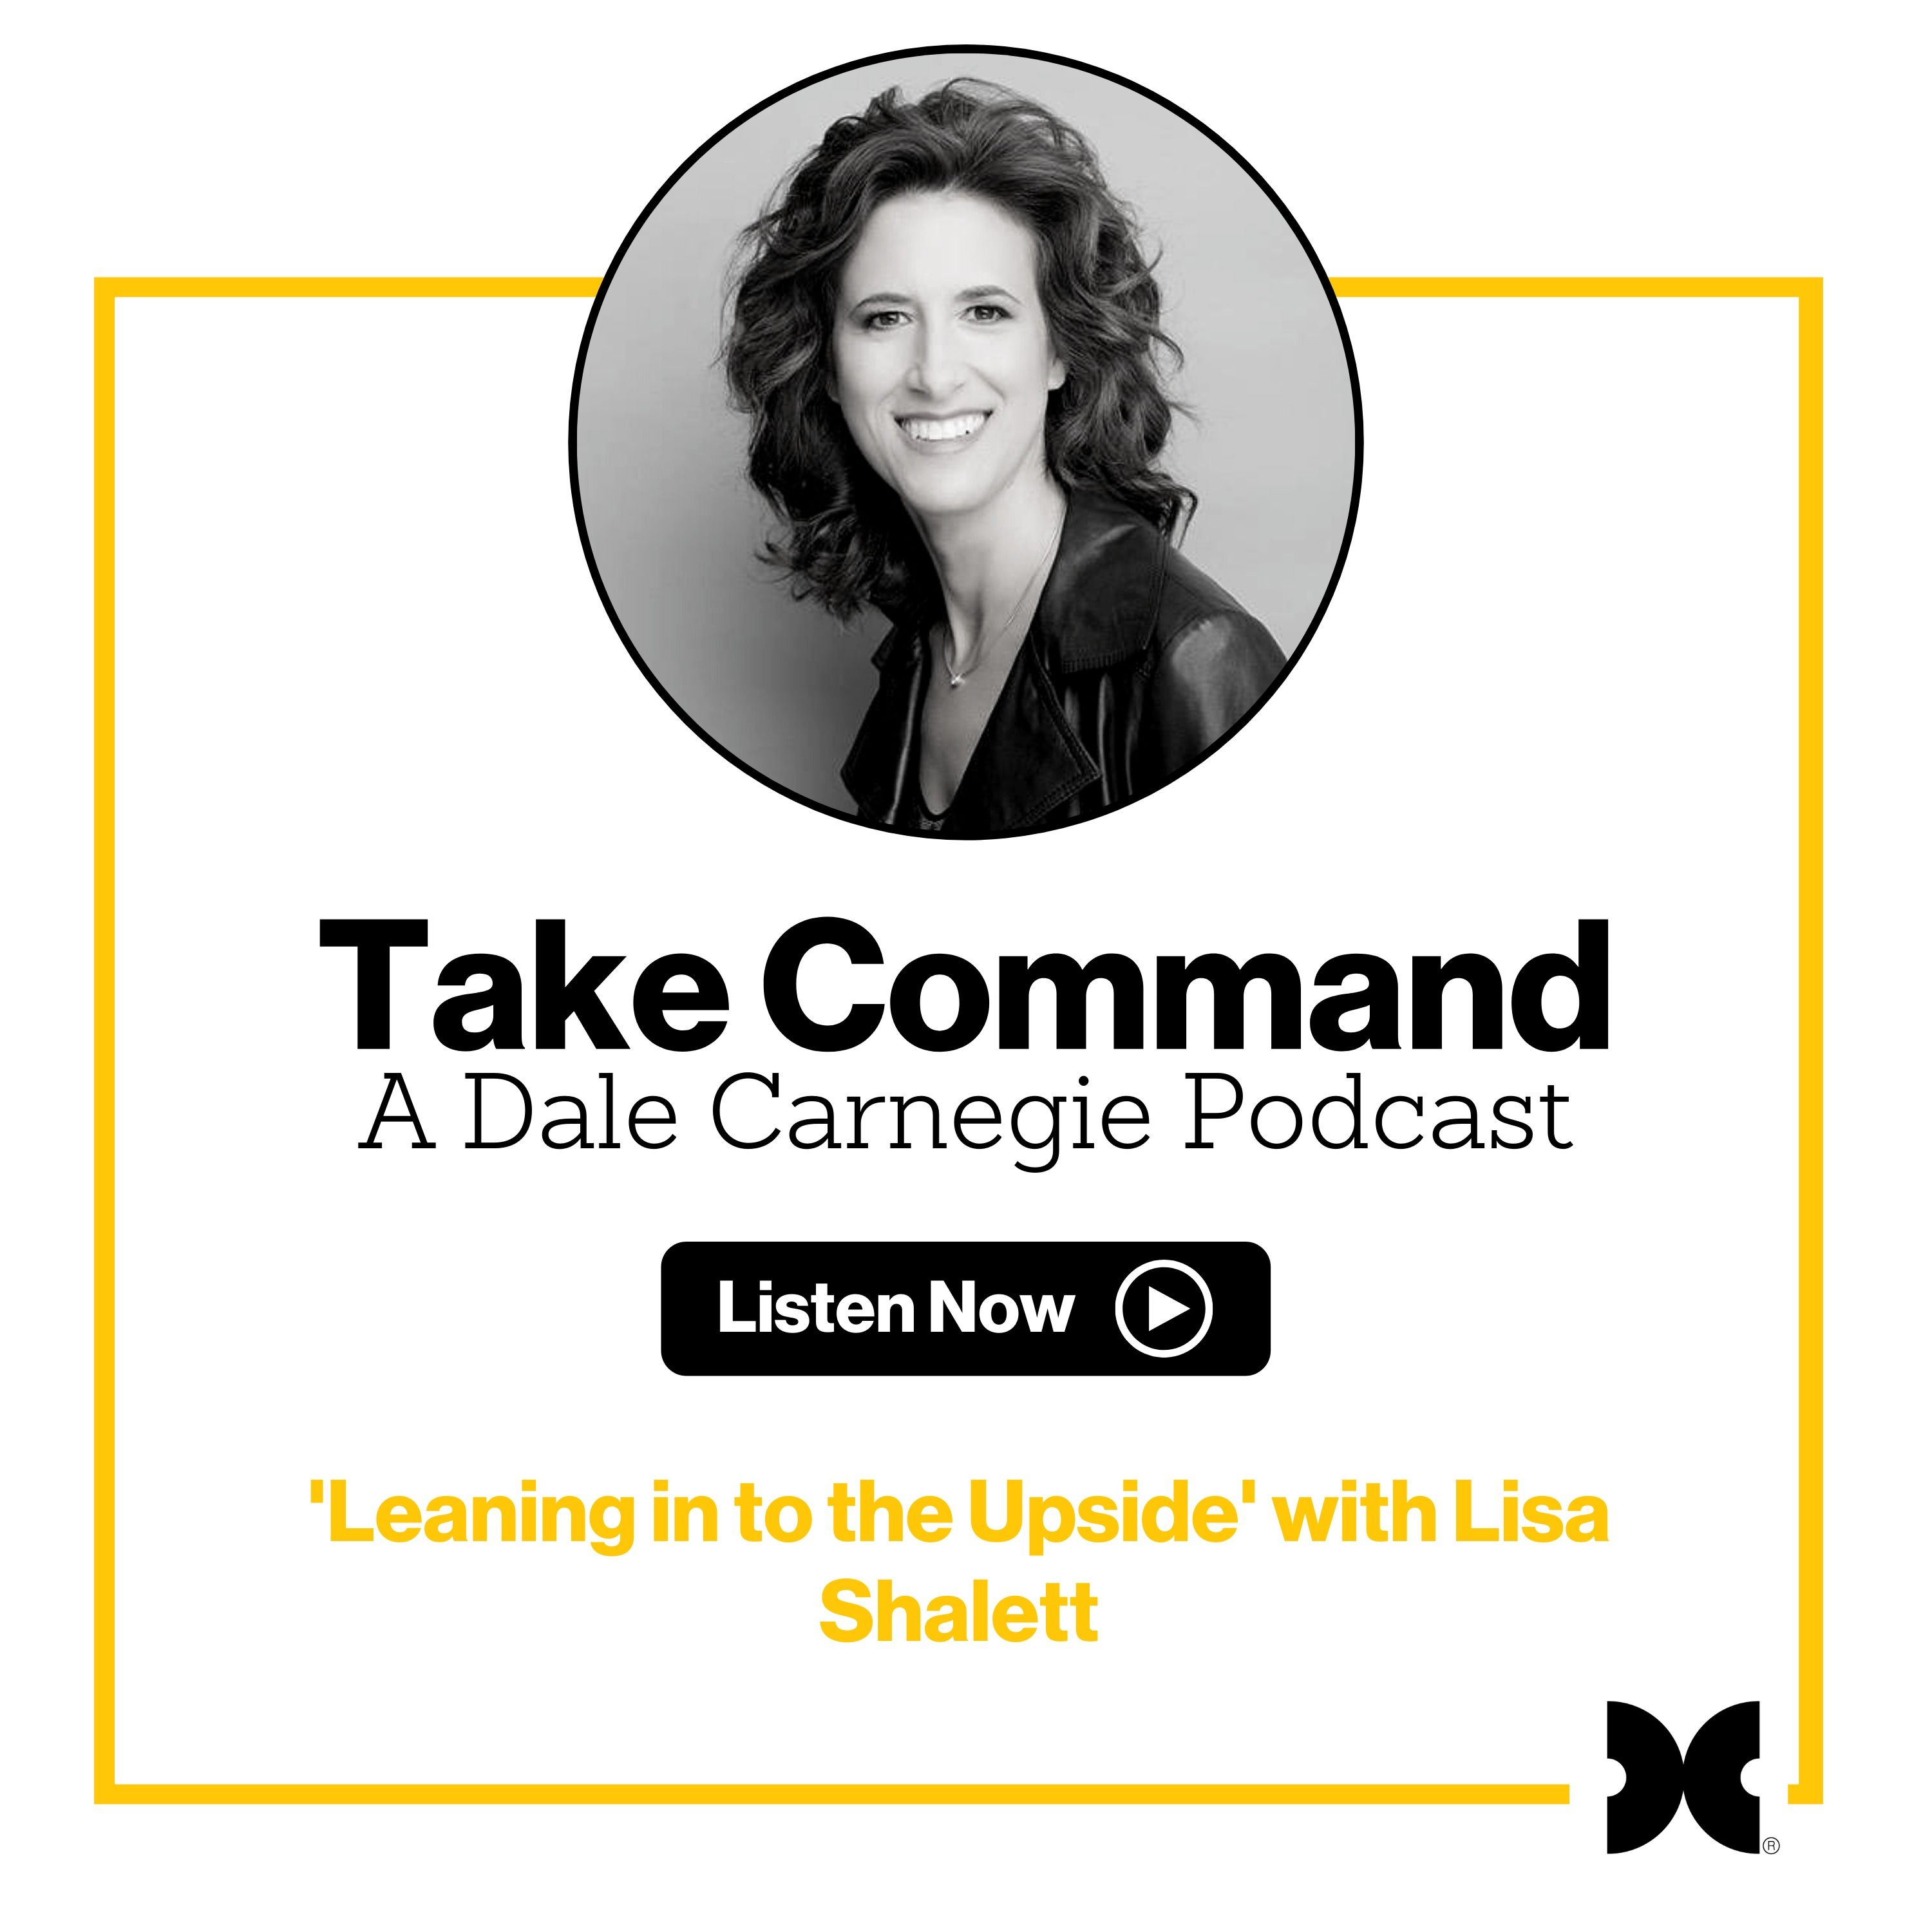 #9 'Leaning in to the Upside' with Lisa Shalett